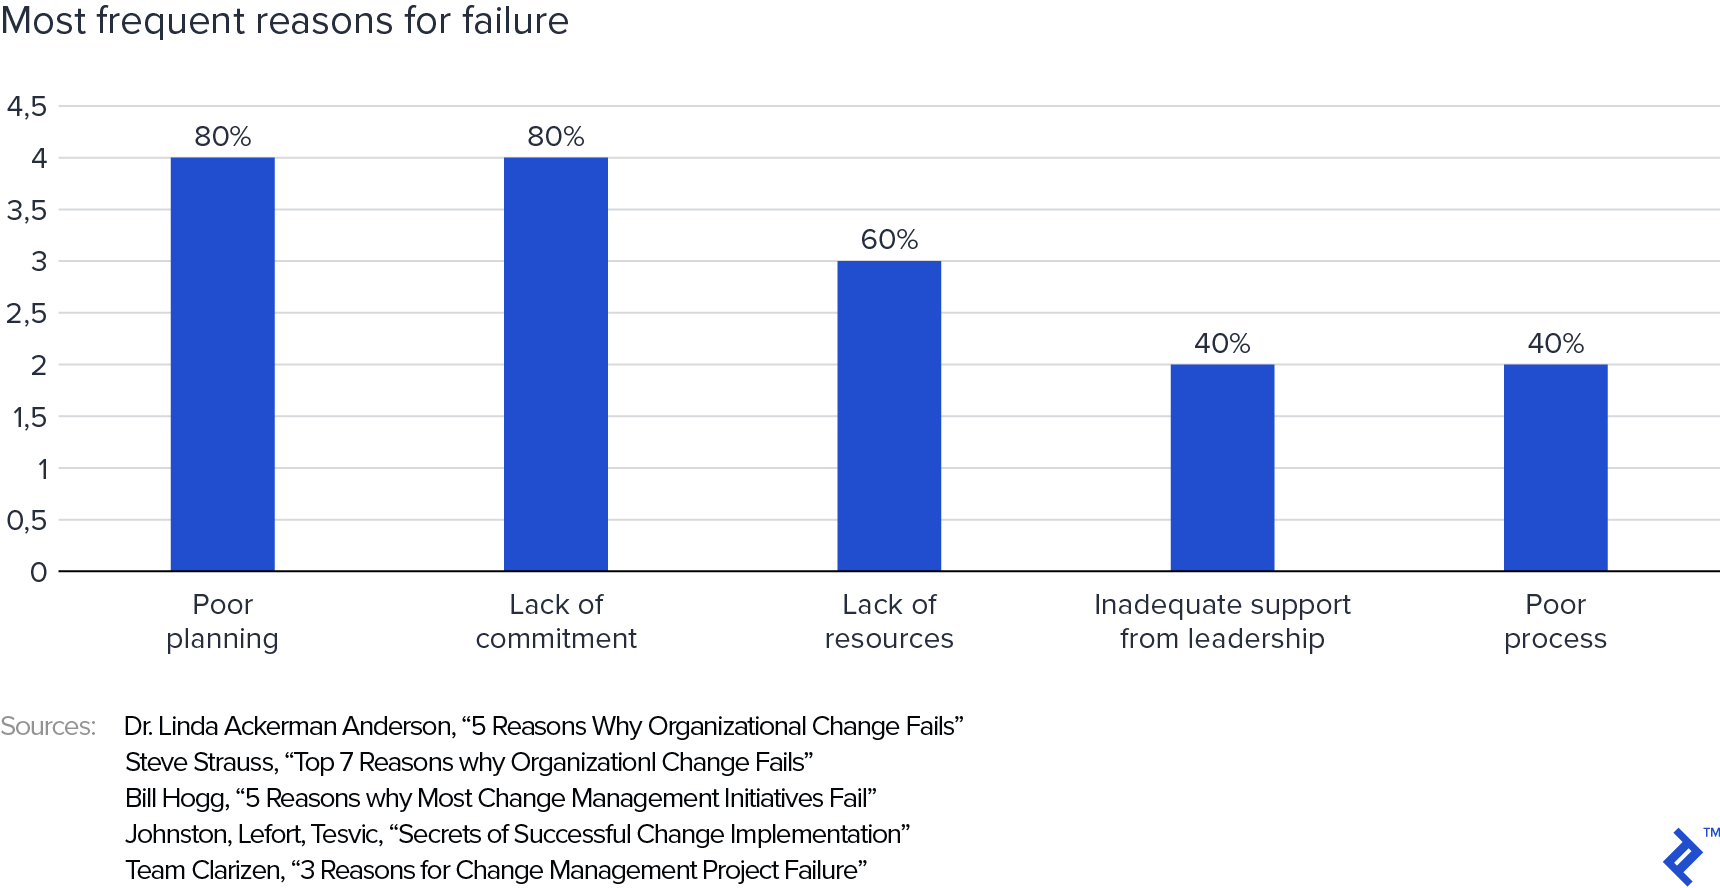 A chart of the most frequent reasons for failure